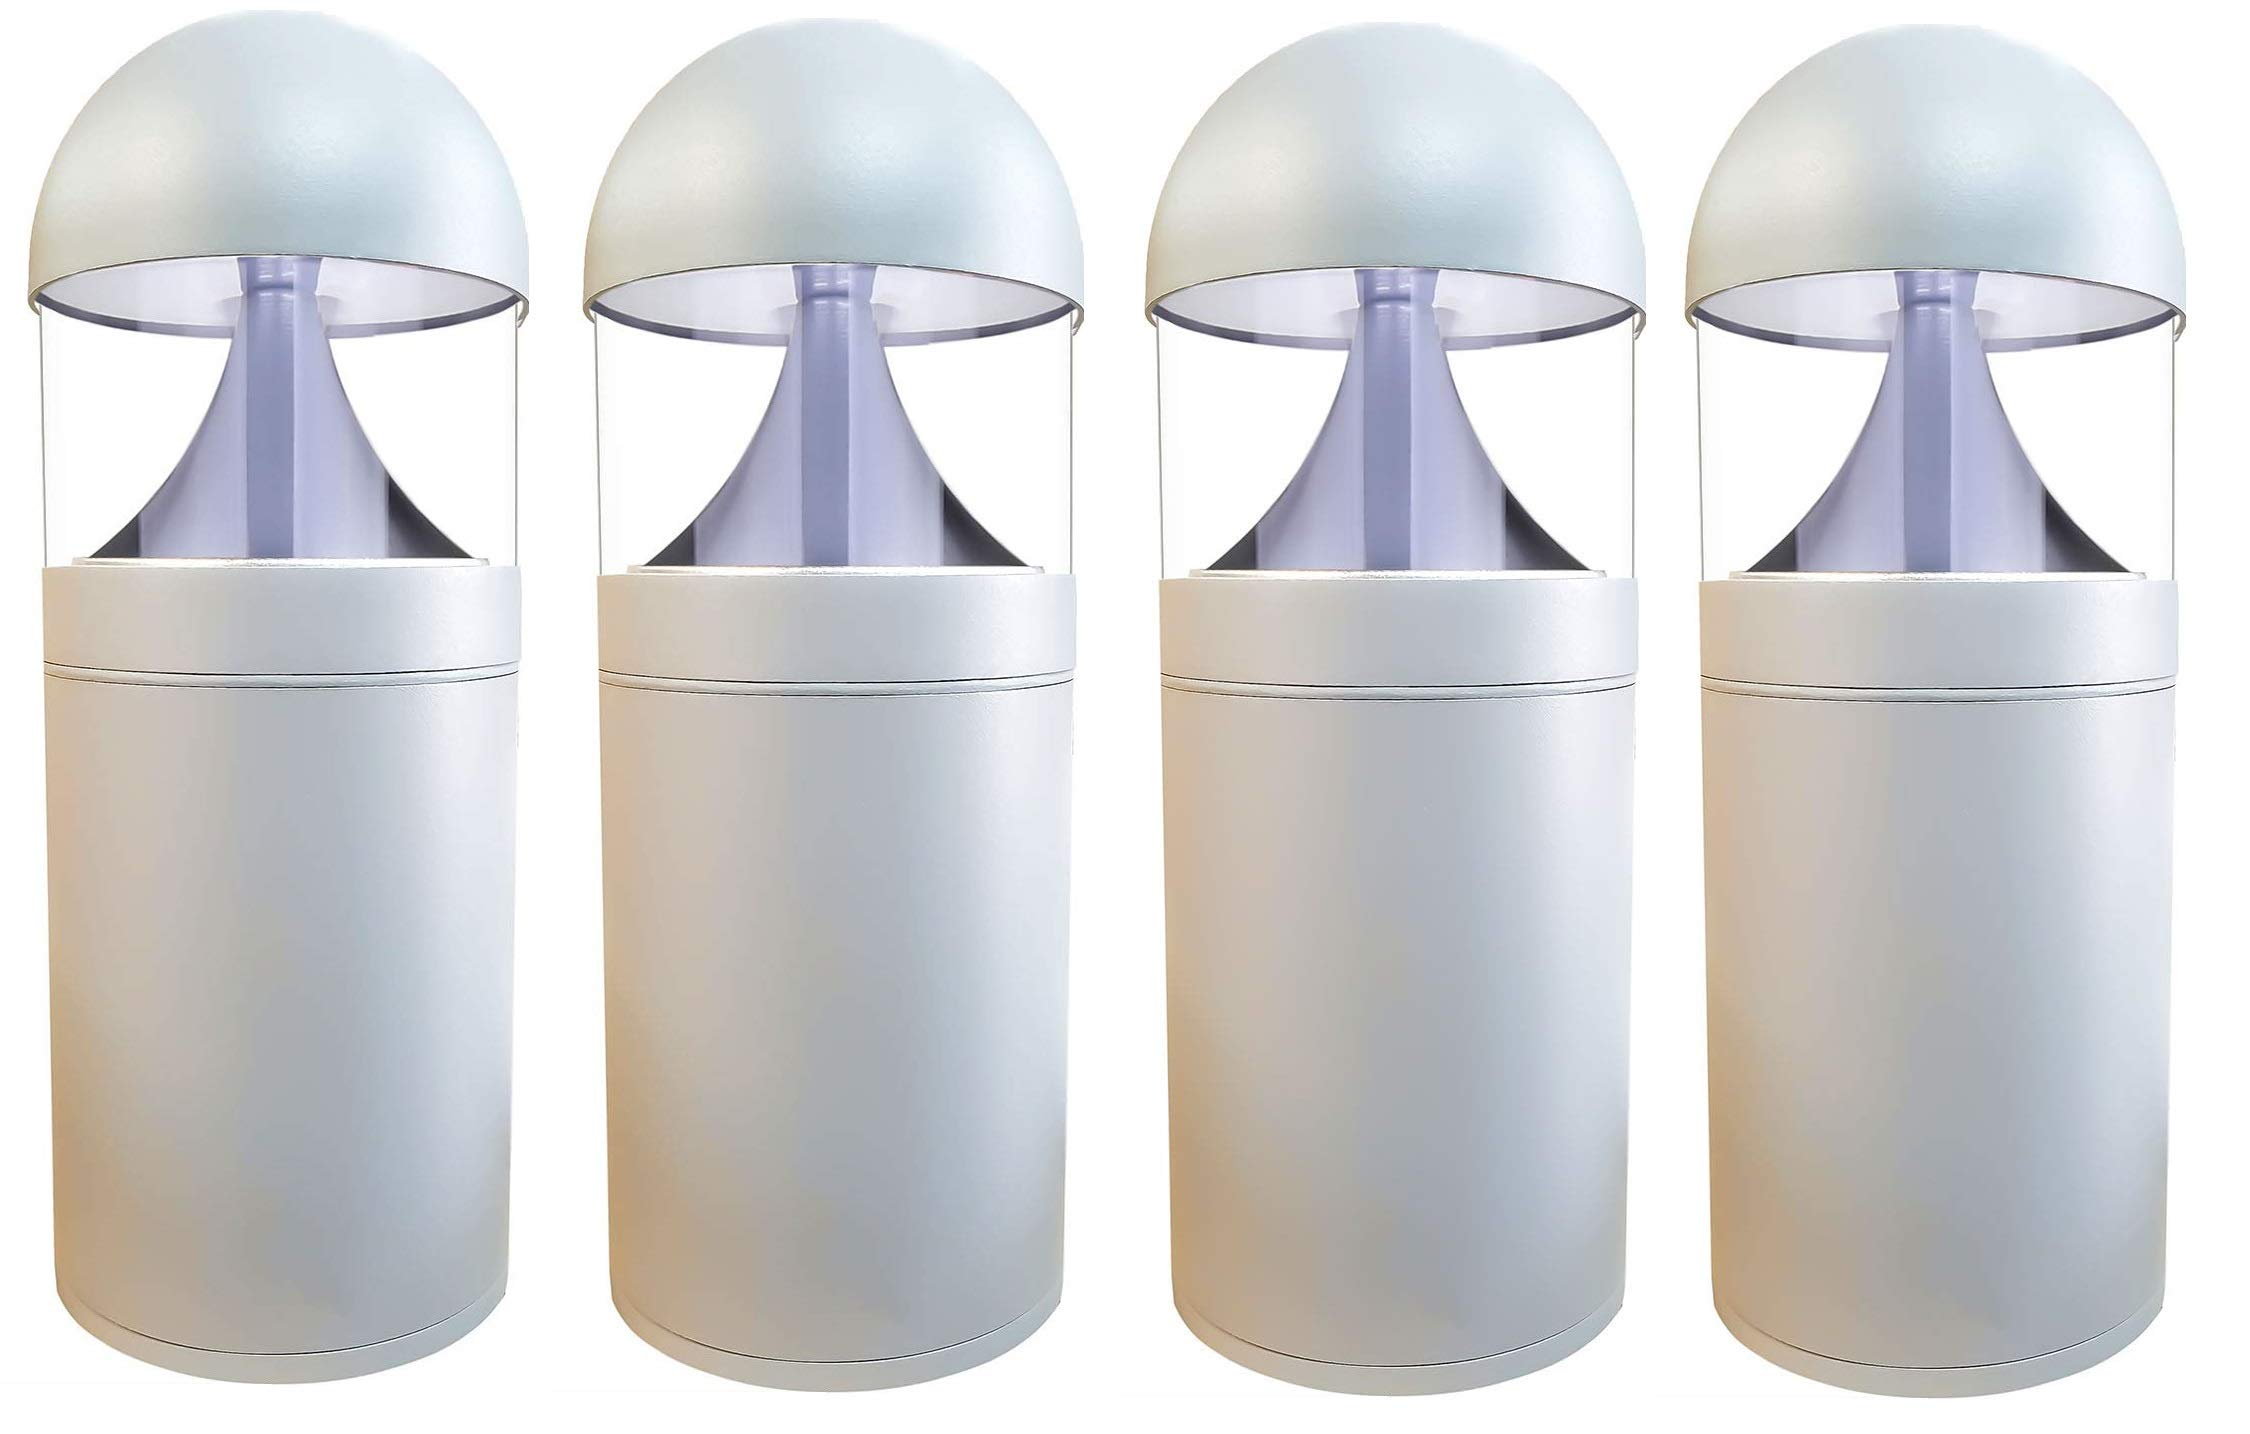 LED Grey Bollard Landscape Lights 16'' 10W 3000K 120-277V Commercial/Residential Lighting Fixture for Garden, Pathway, Driveway. Rated IP65 Suitable for Wet Locations, ETL Listed (4 Pack)